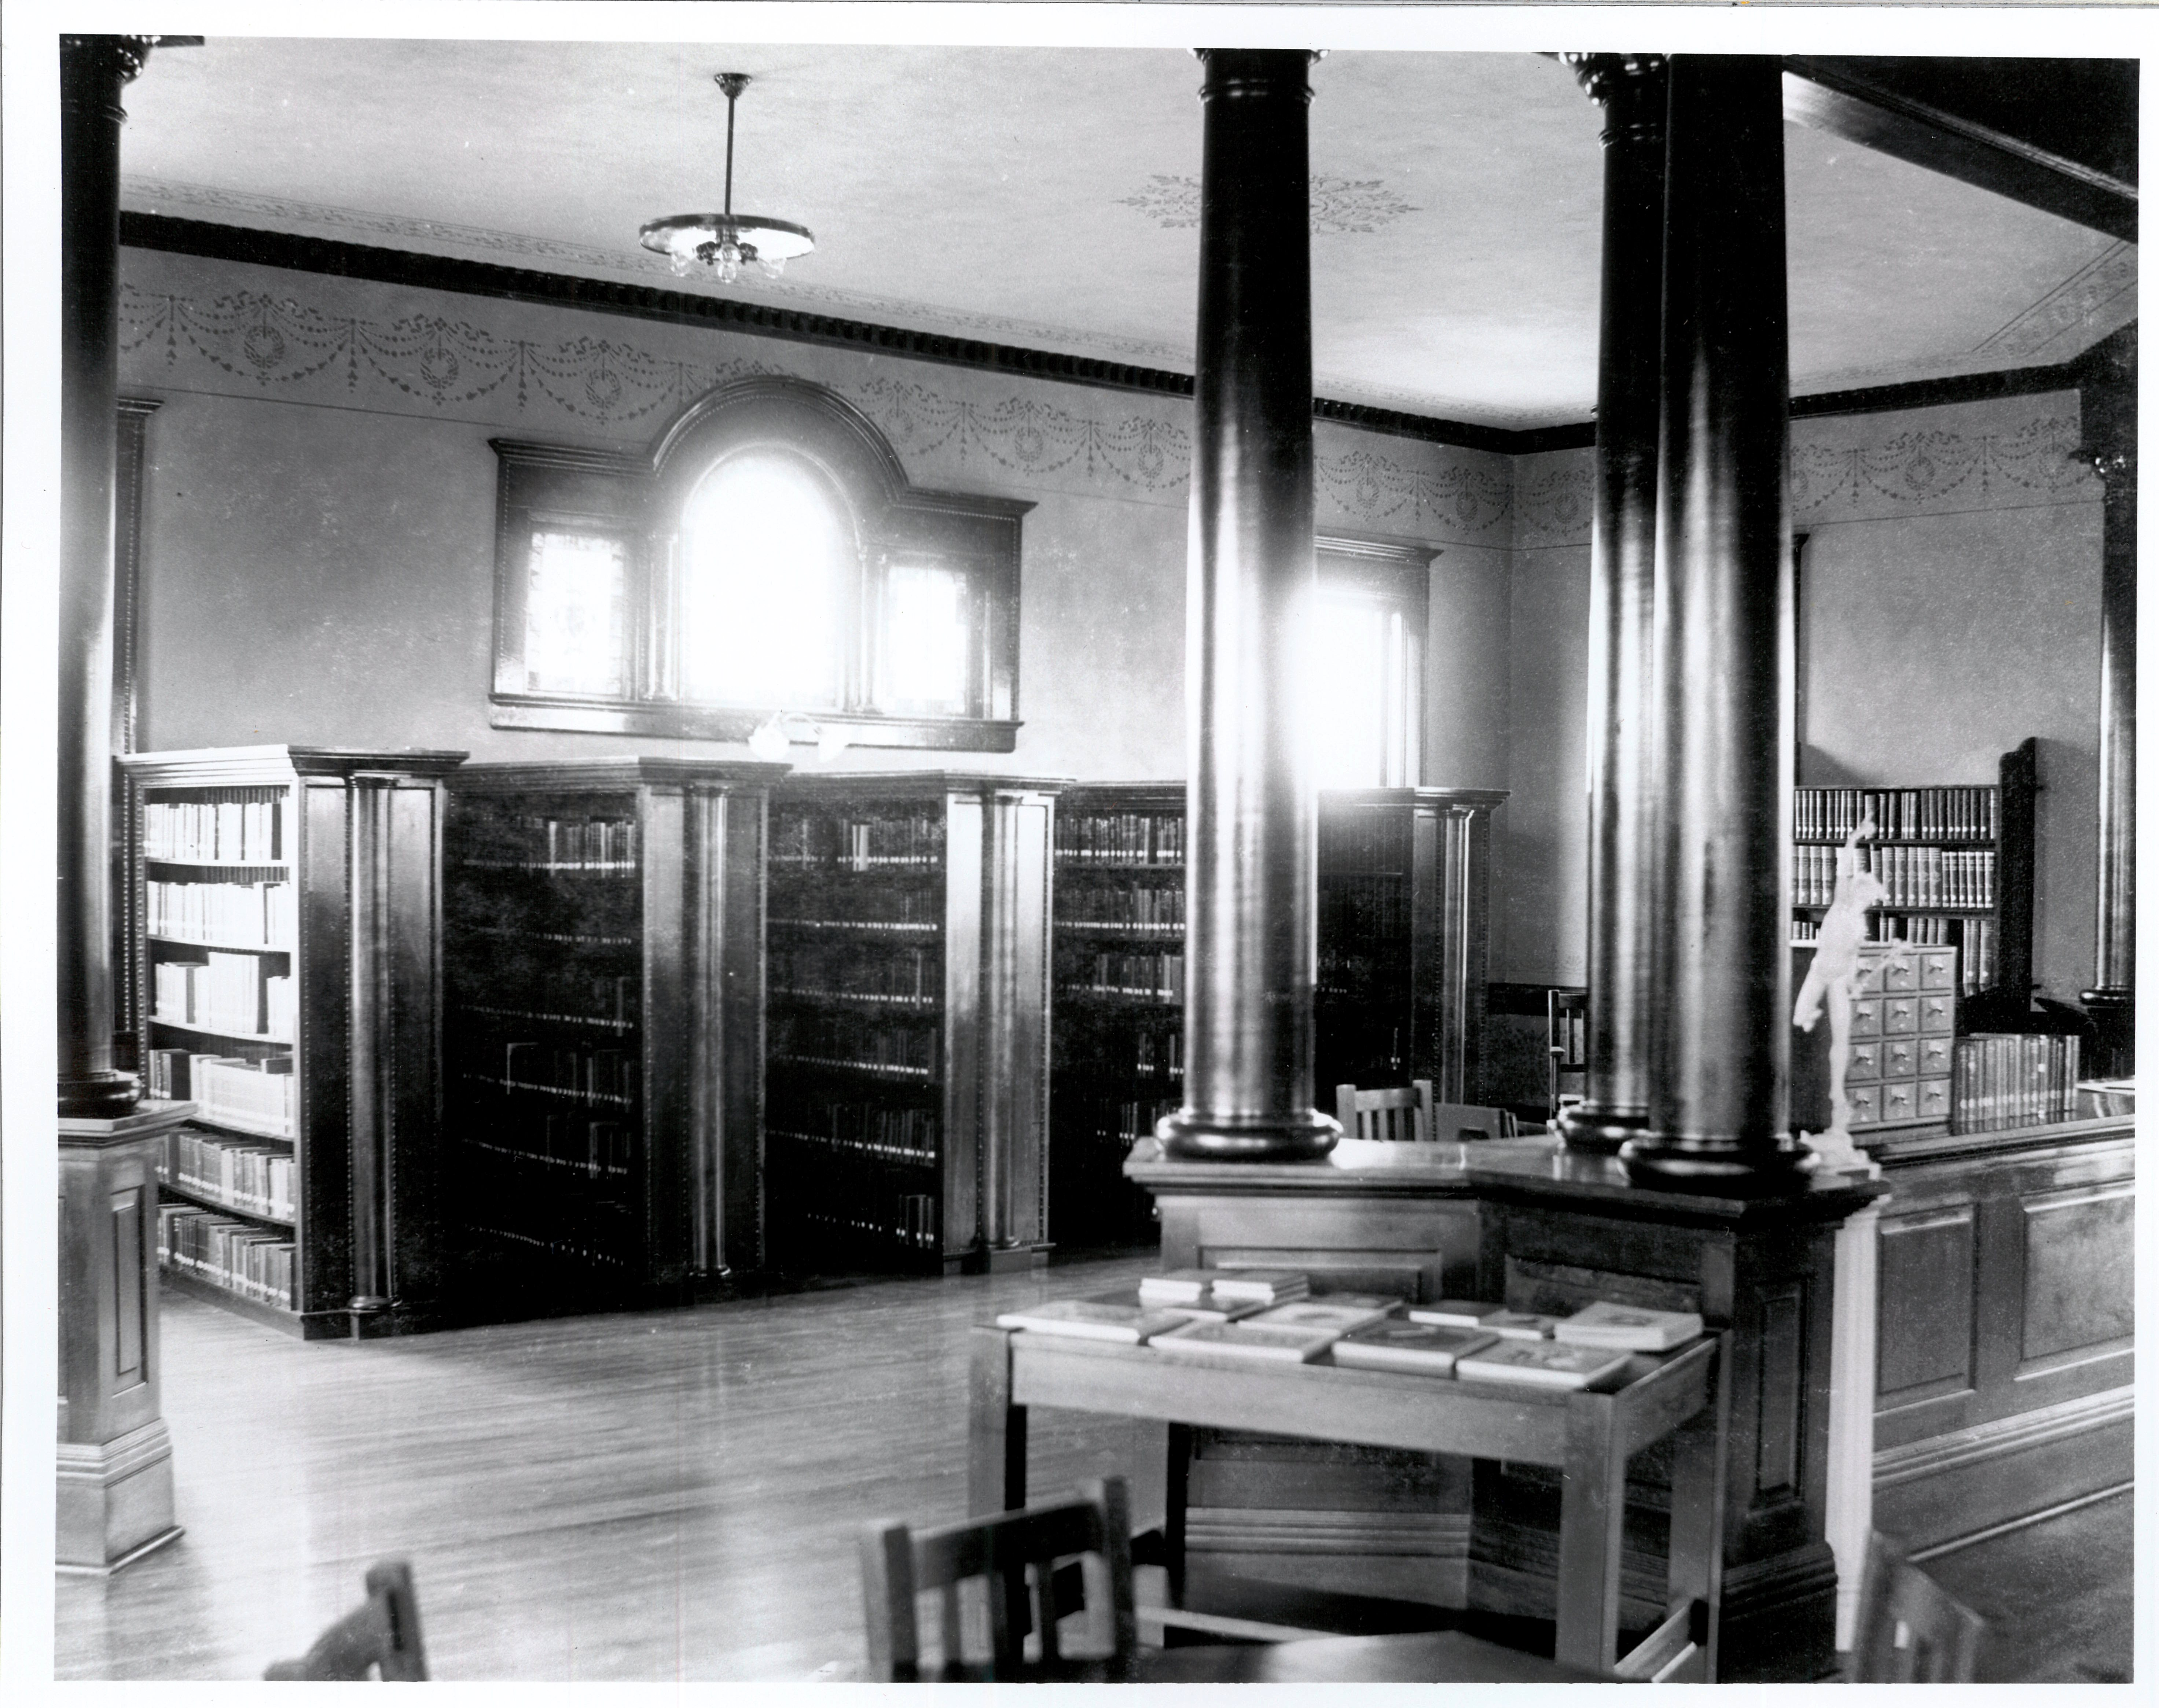 circulation desk and stacks looking SE